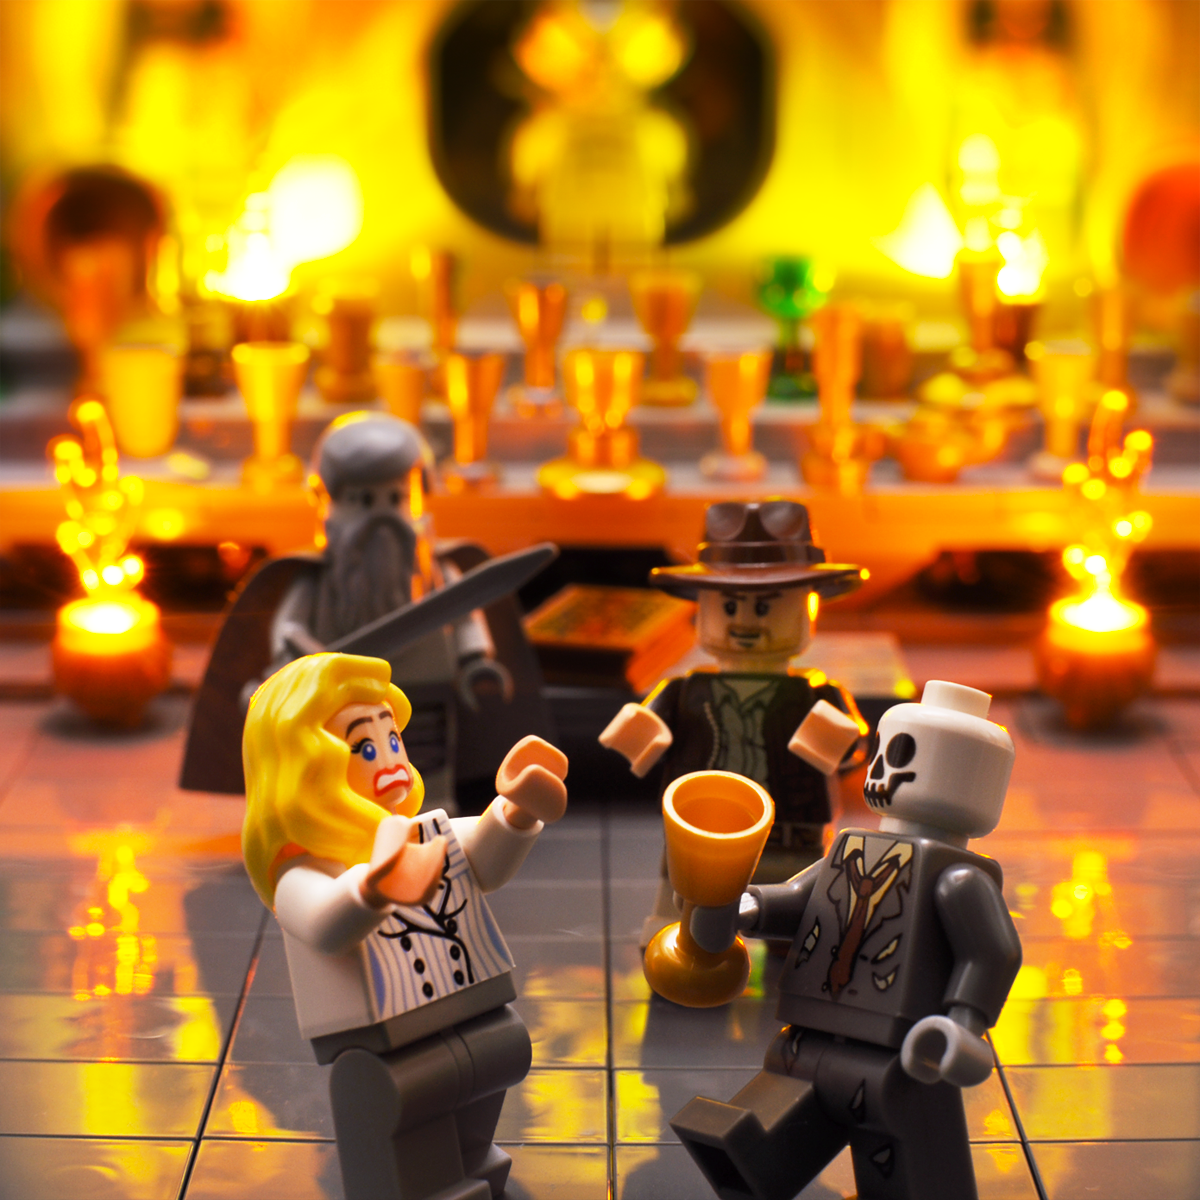 Indiana Jones And The Last Crusade In Lego Cool Lego Creations Lego Amazing Lego Creations